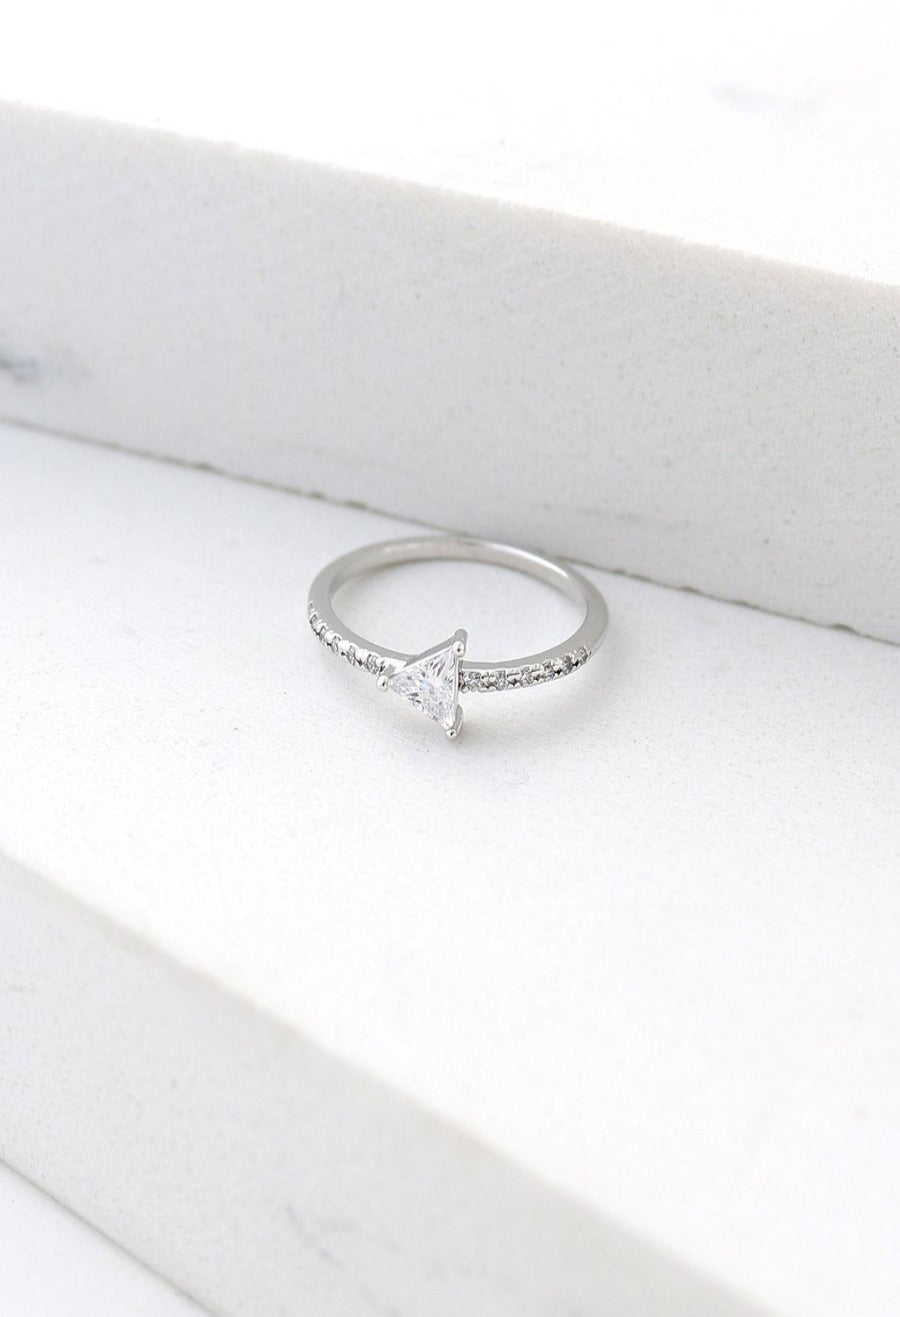 LOVER'S TEMPO - ON POINT RING IN SILVER (SIZE 6)